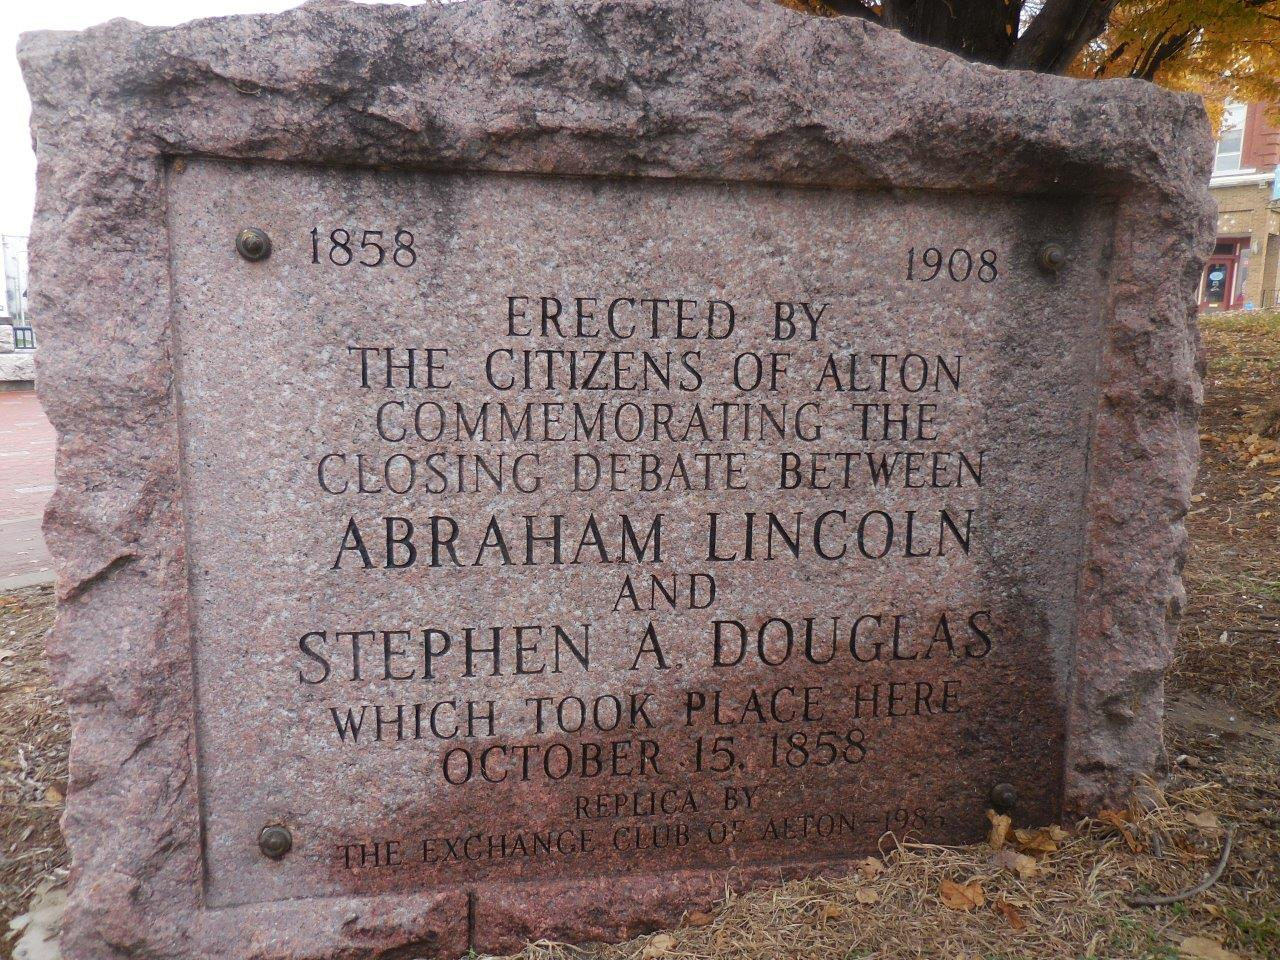 Historical marker at site of Lincoln-Douglas debate